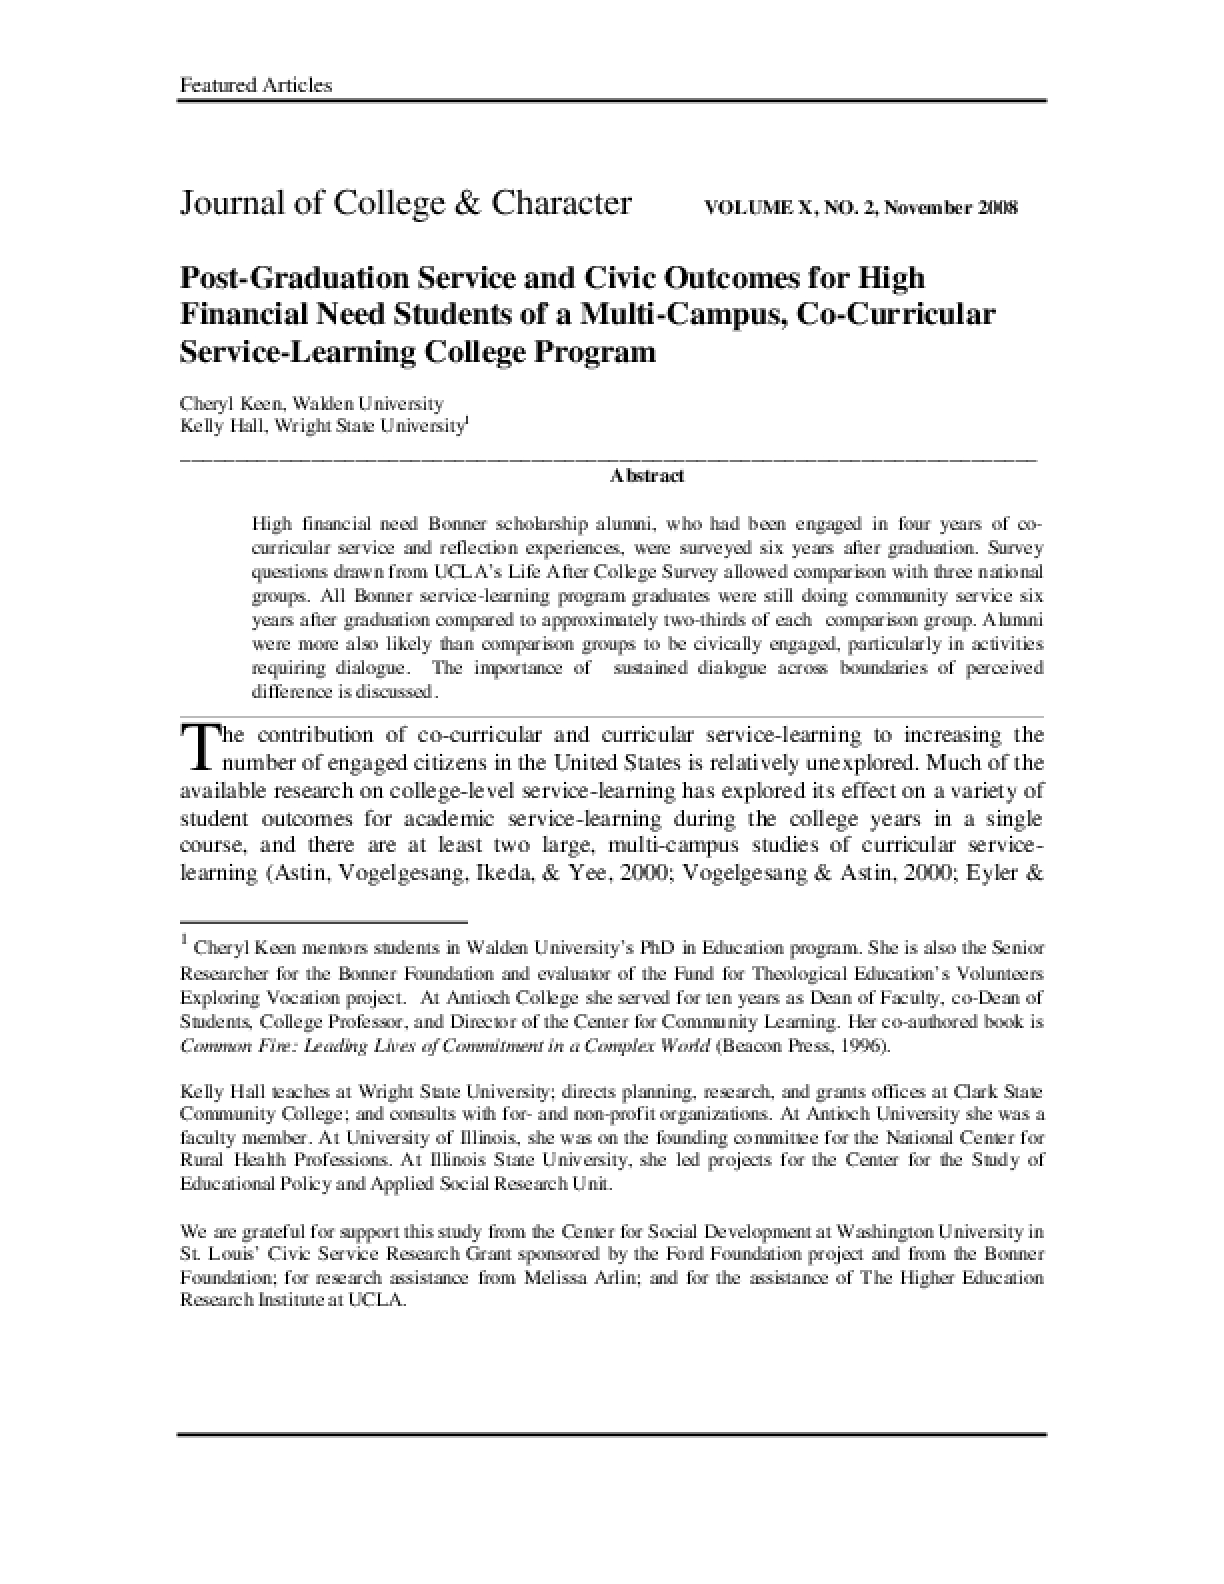 Post-Graduation Service and Civic Outcomes for High Financial Need Students of a Multi-Campus, Co-Curricular Service-Learning College Program